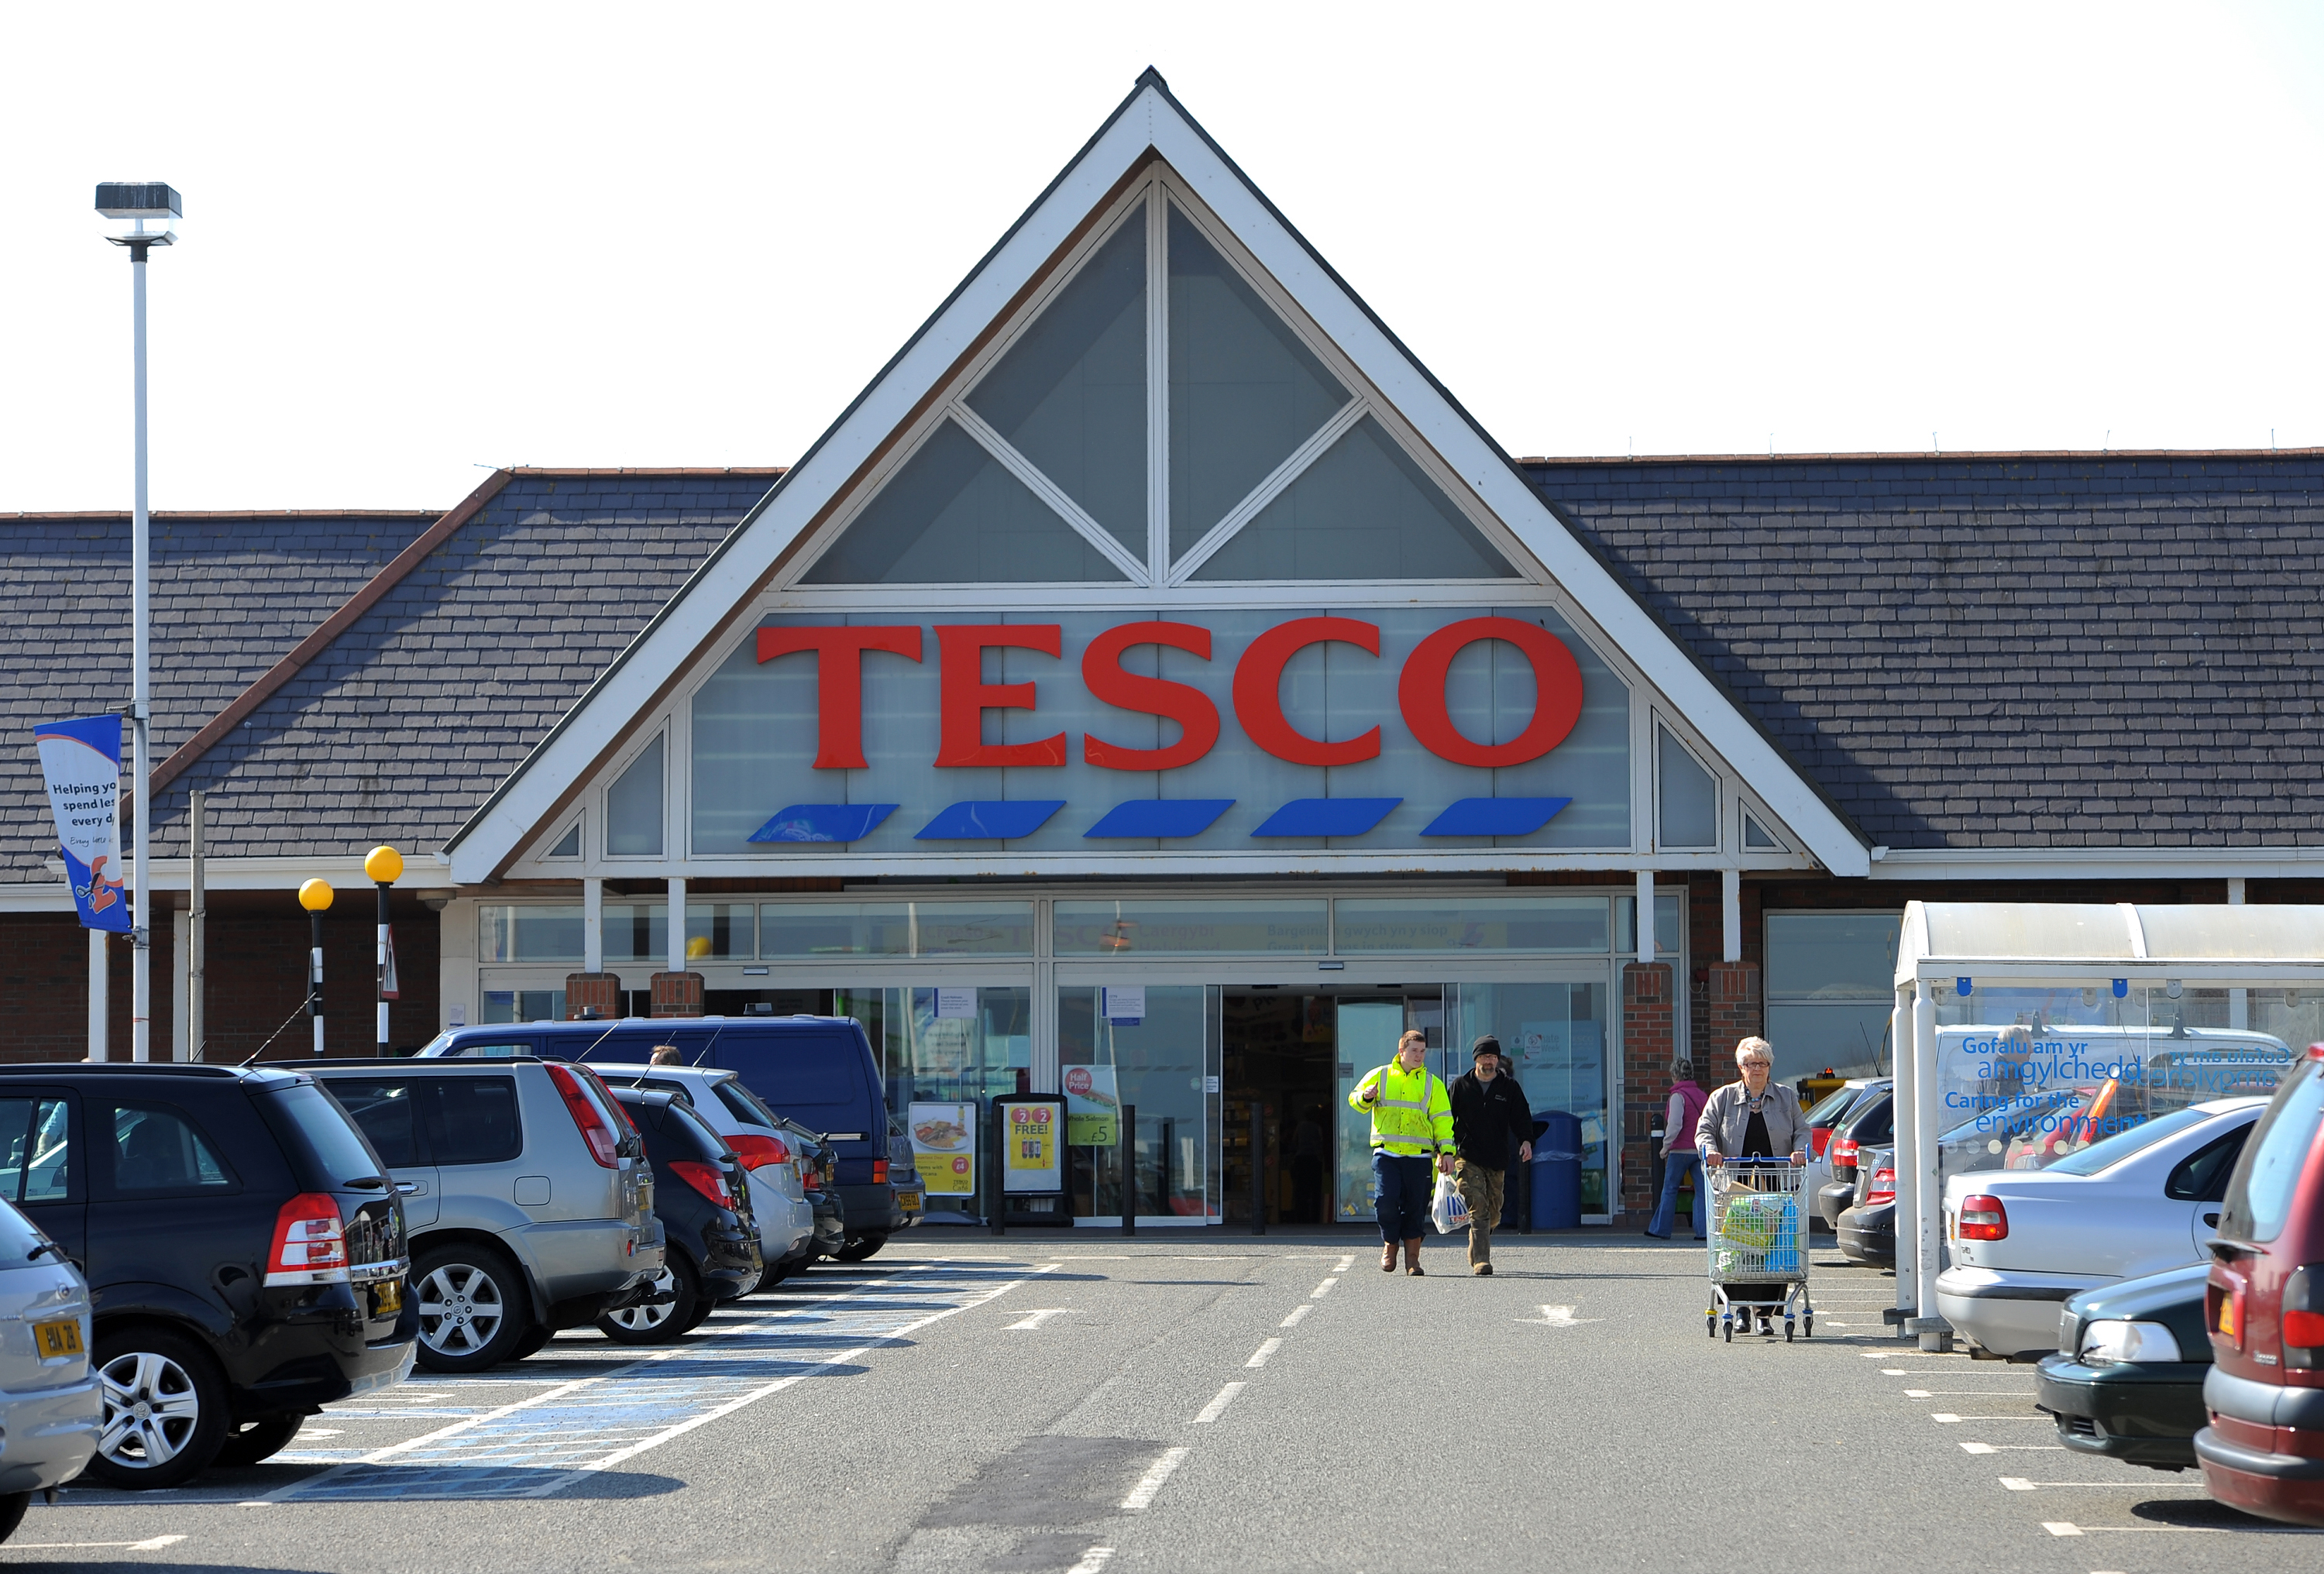 The Tesco supermarket in Holyhead